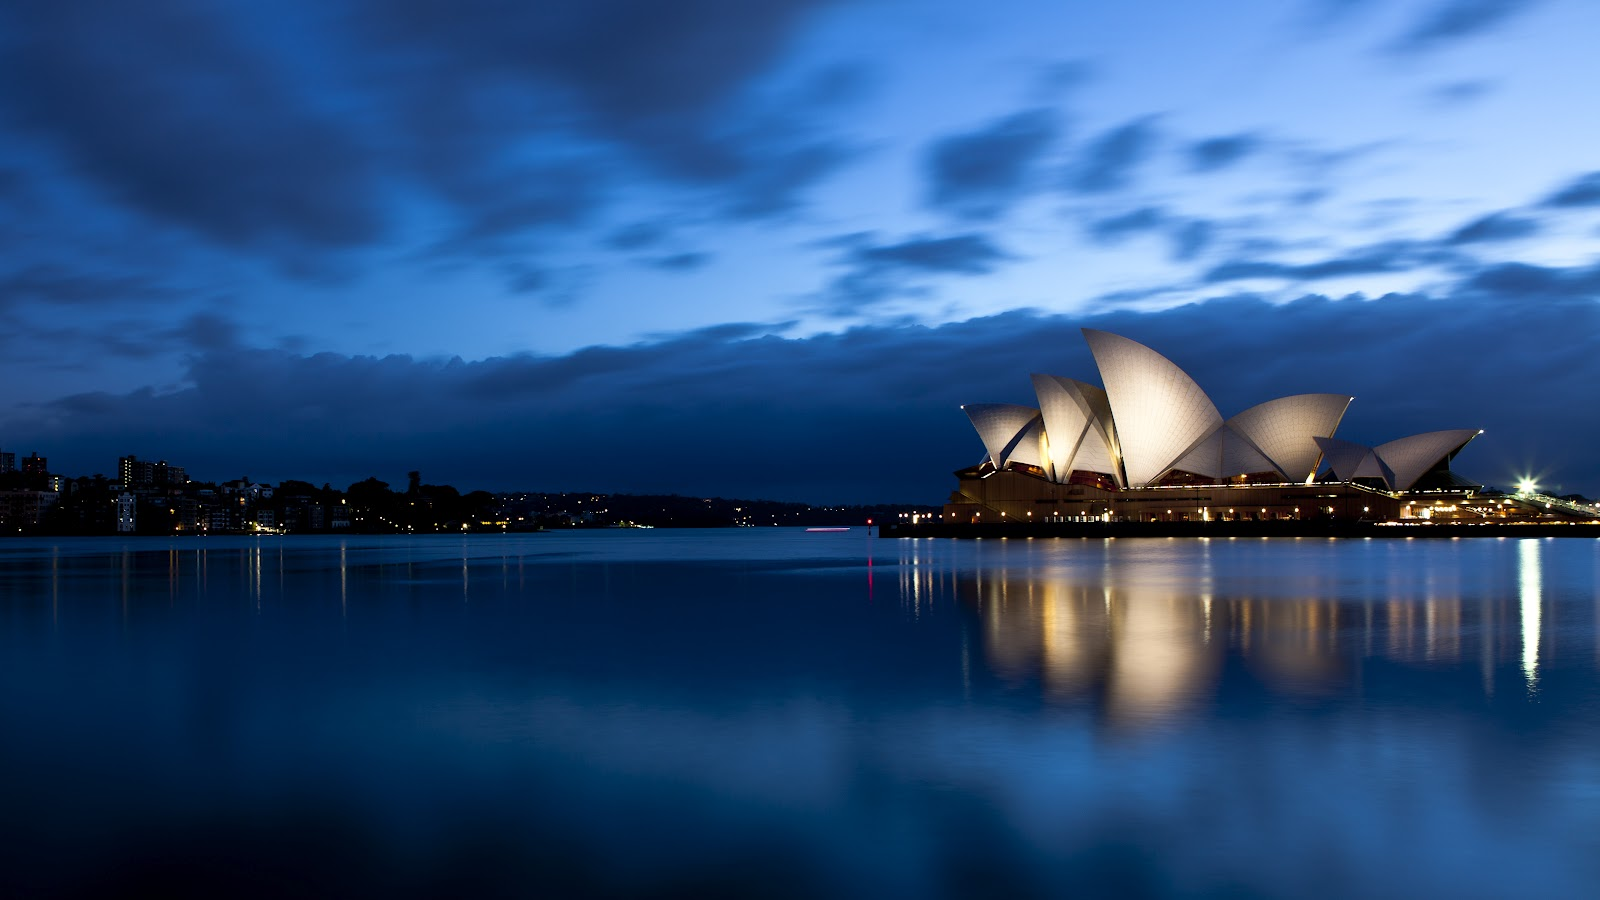 Sydney Opera House Wallpapers   Travel HD Wallpapers 1600x900